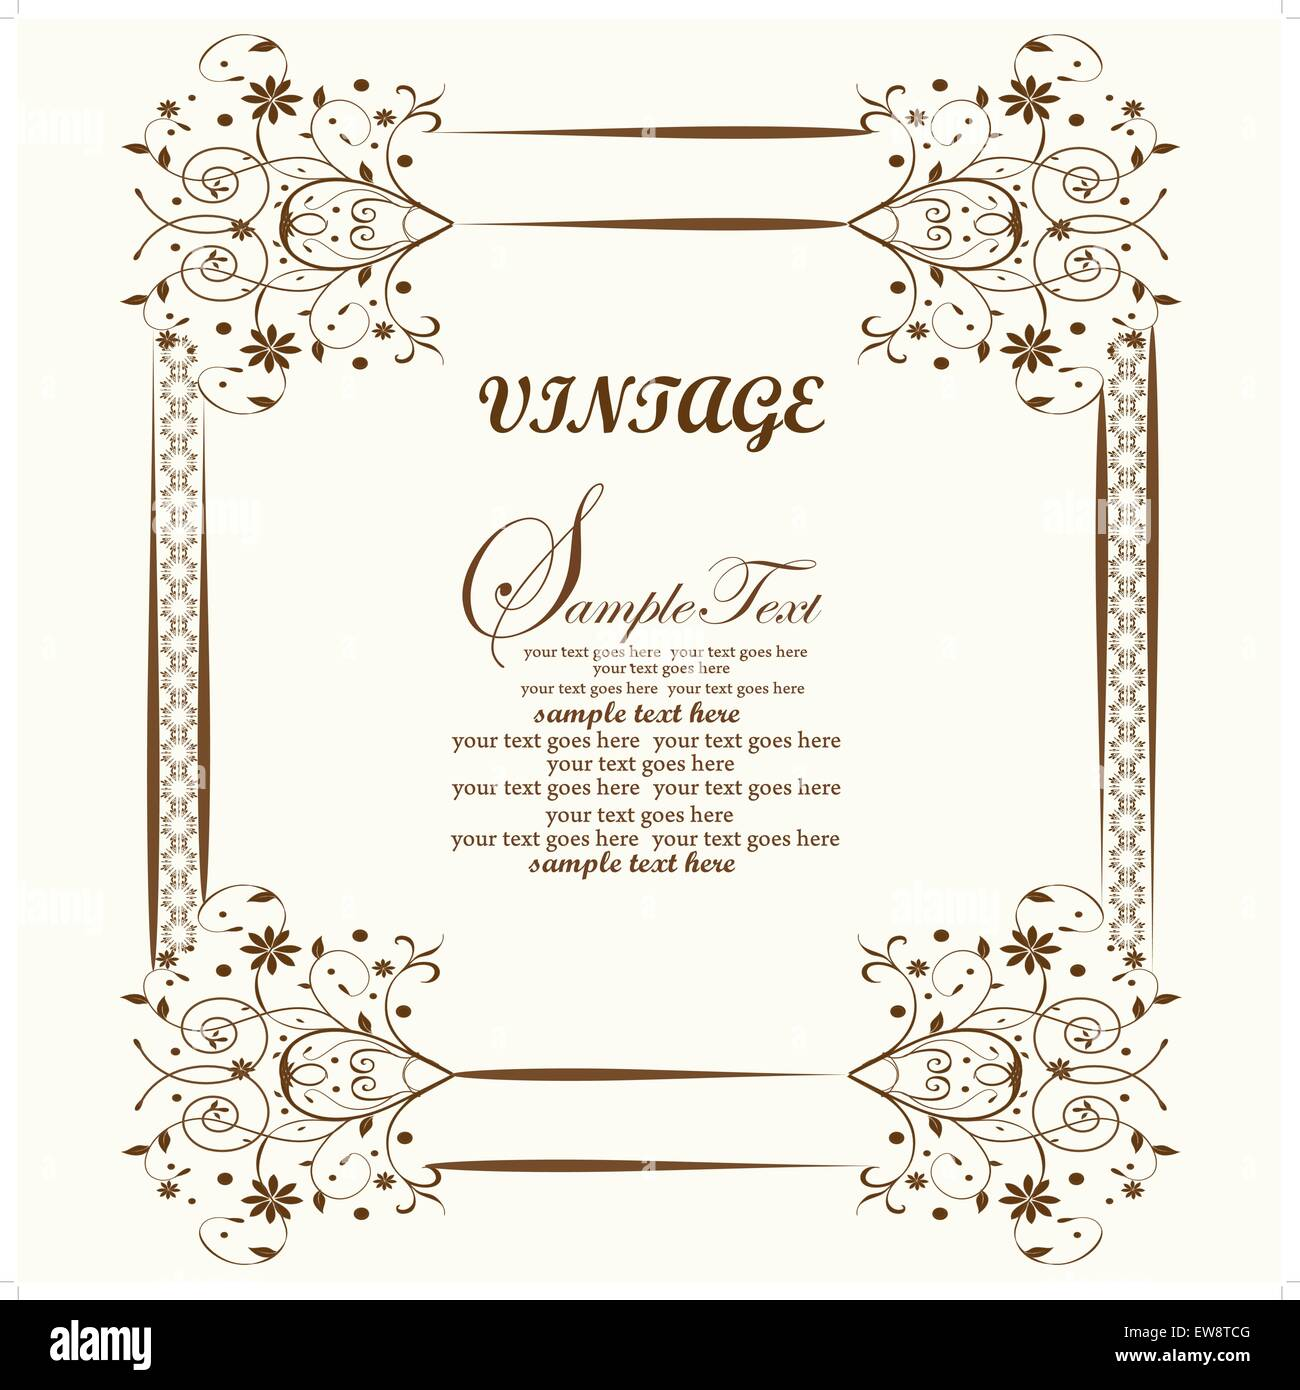 Vintage invitation card with ornate elegant abstract floral design, brown flowers on yellow. Vector illustration. Stock Vector